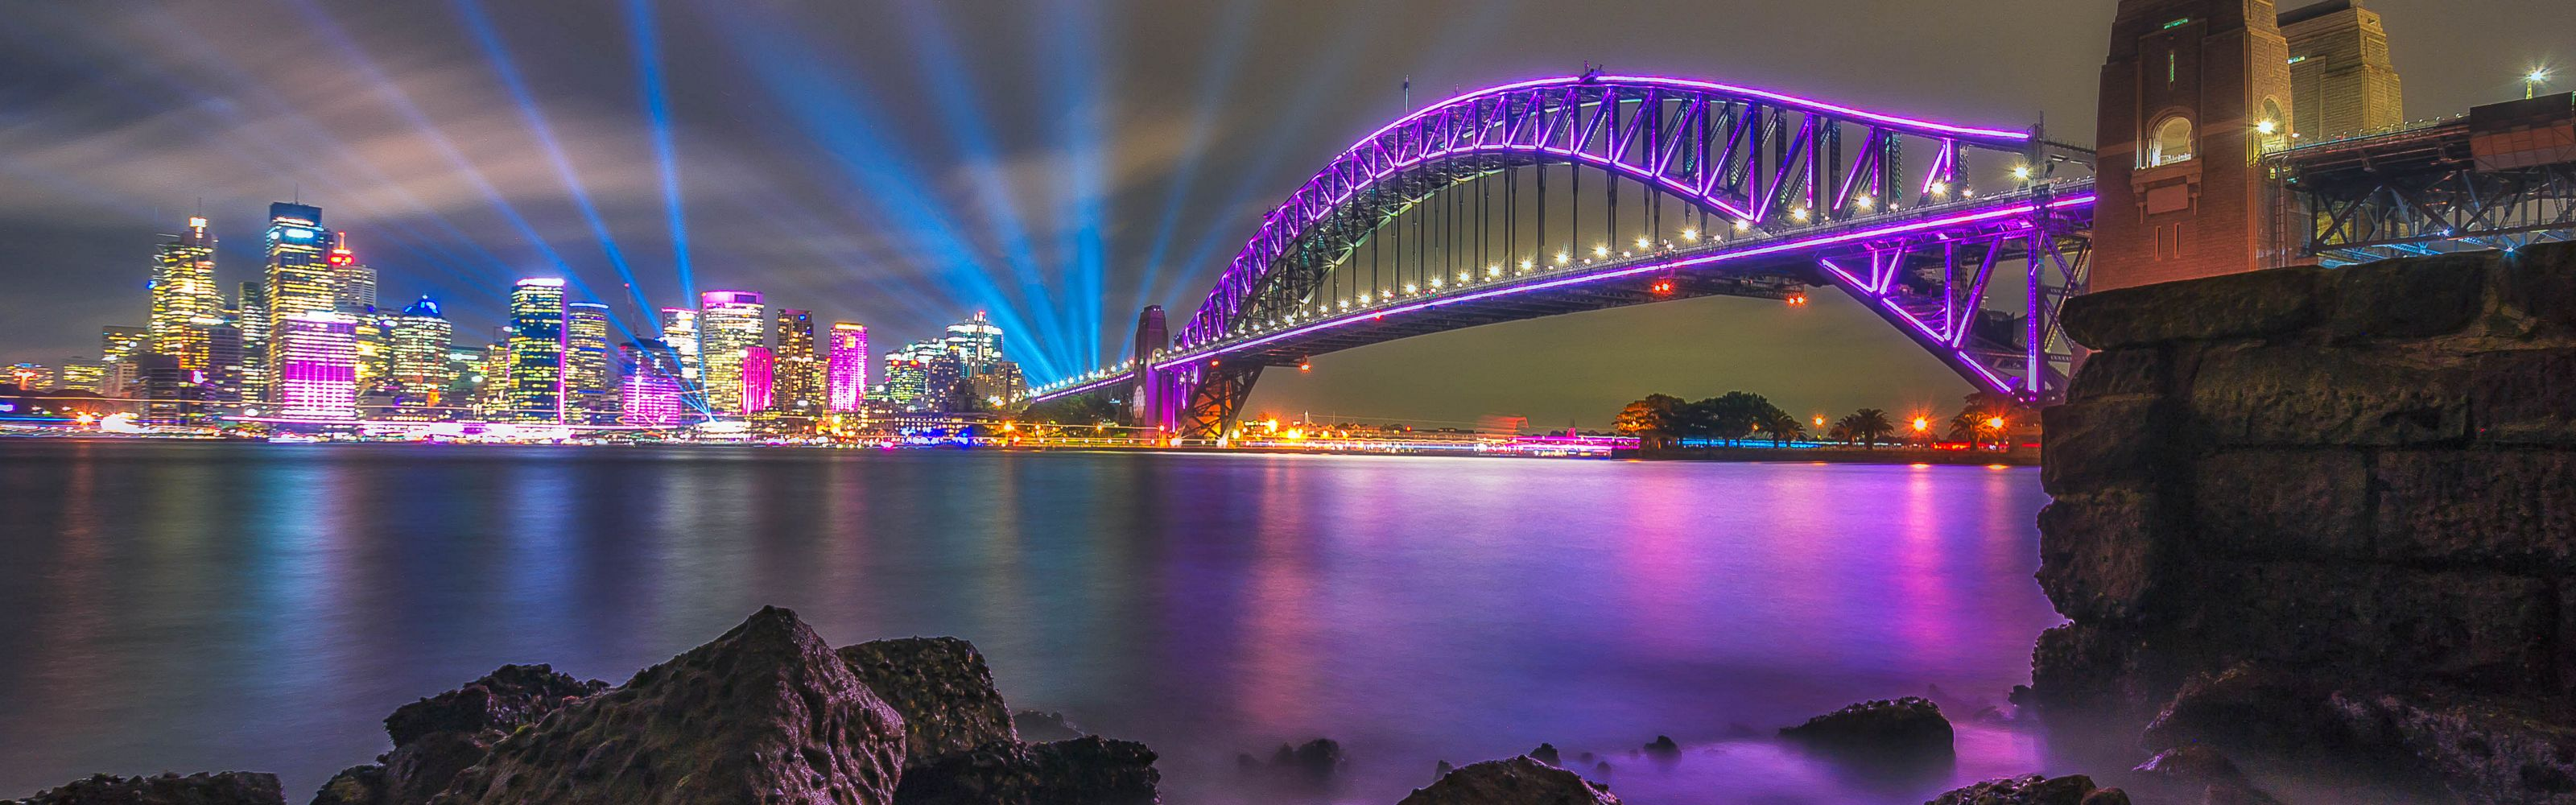 colorful city lights at night